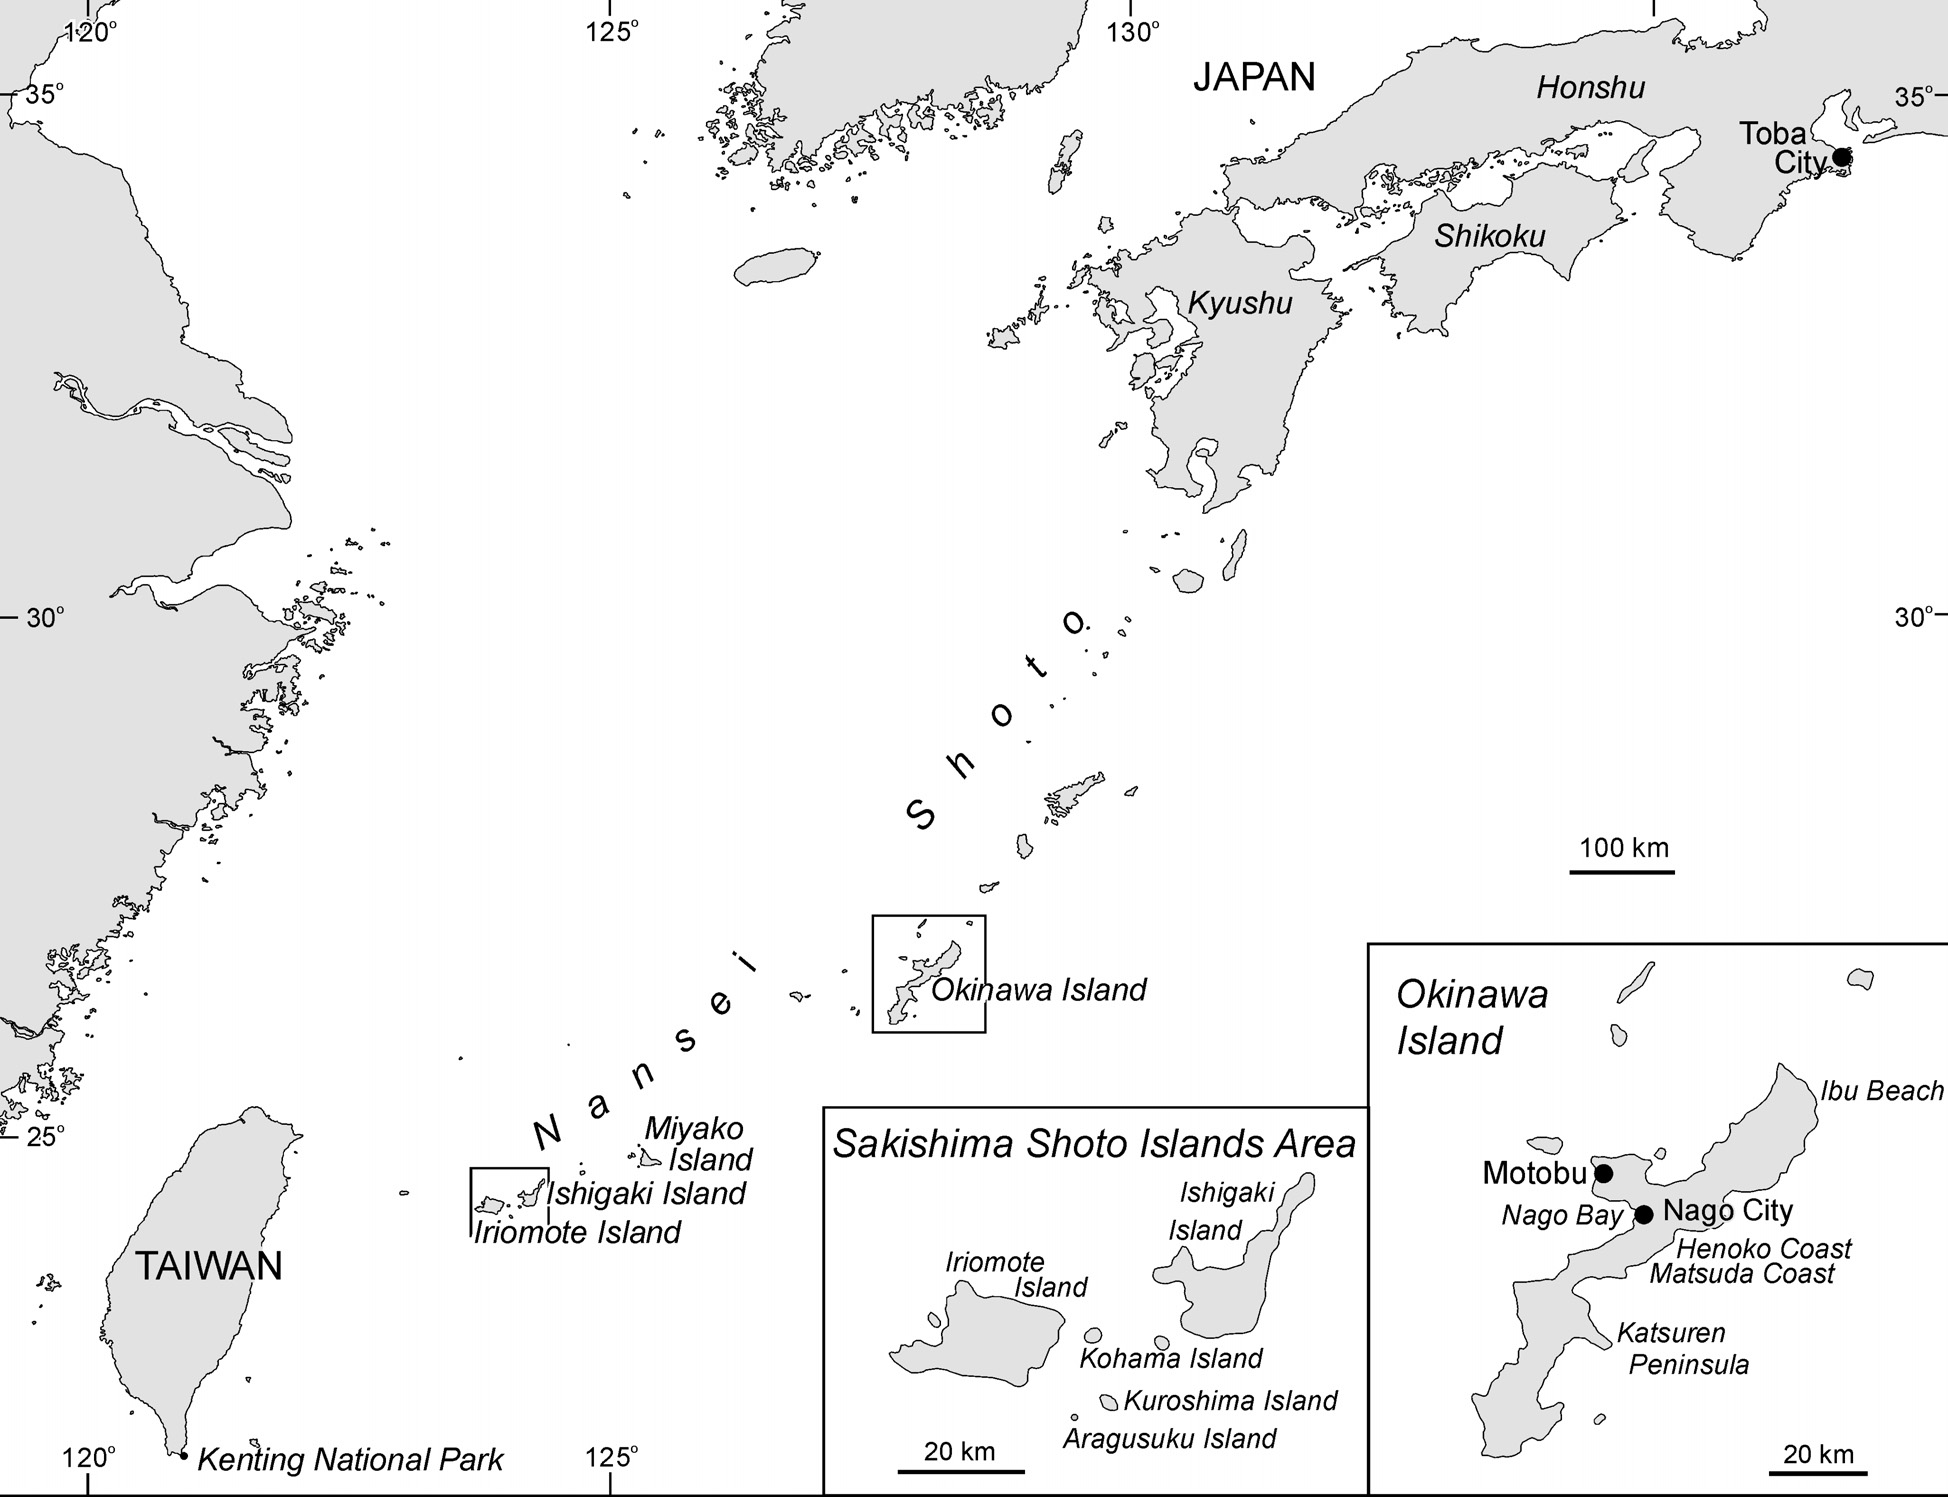 Distribution and Abundance The presence of dugongs within the Nansei Shoto or the South Western Islands of Japan has been well established for many centuries.